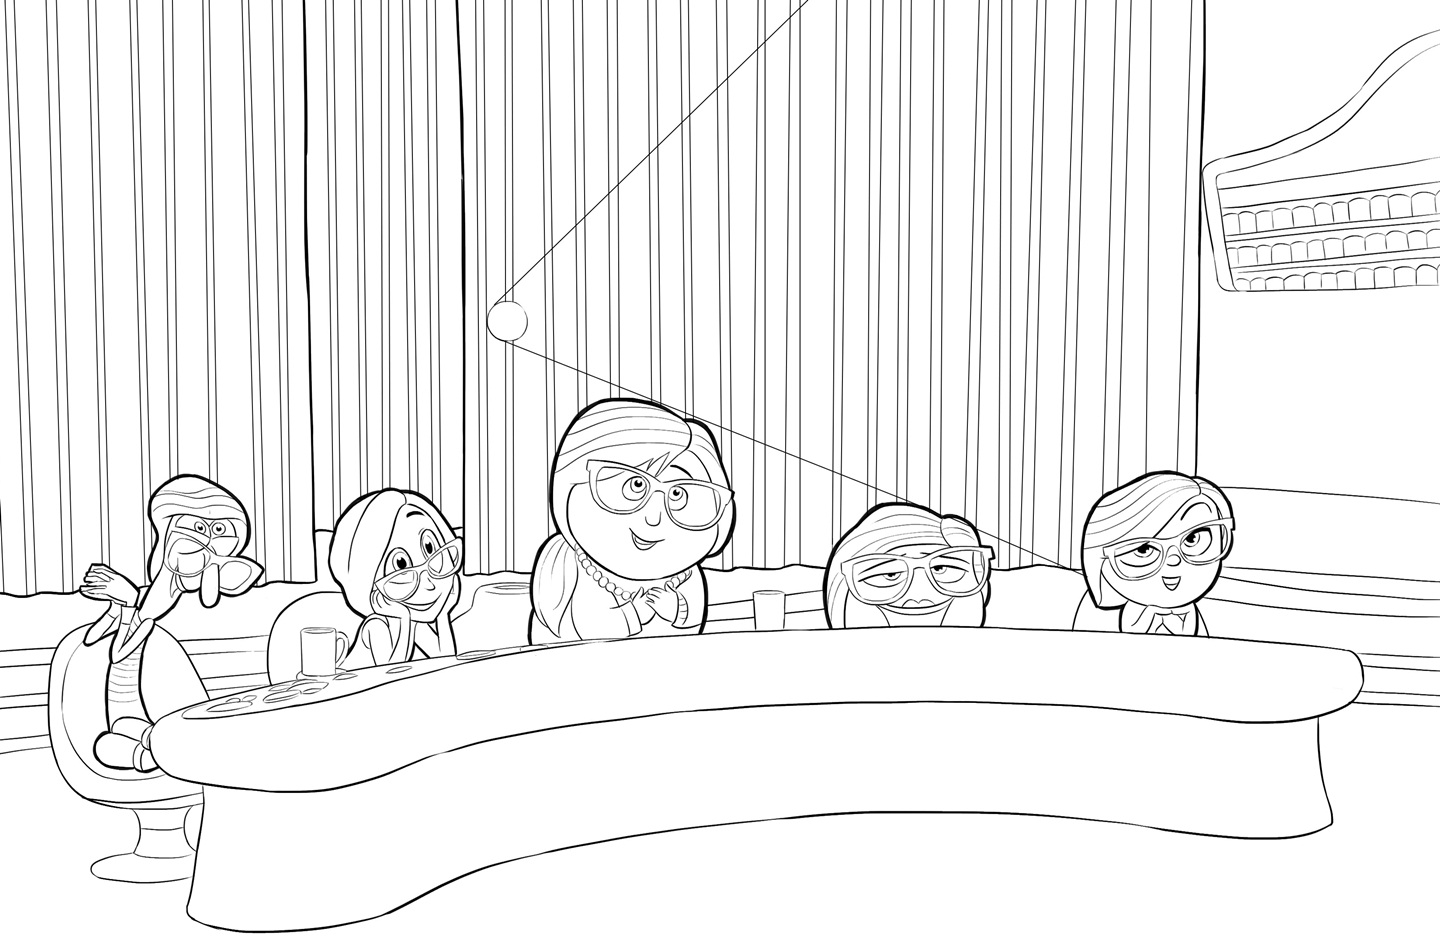 Inside out coloring pages - Free Coloring Pages Of Inside Out Colored Inside Out Coloring Pages 1 Download